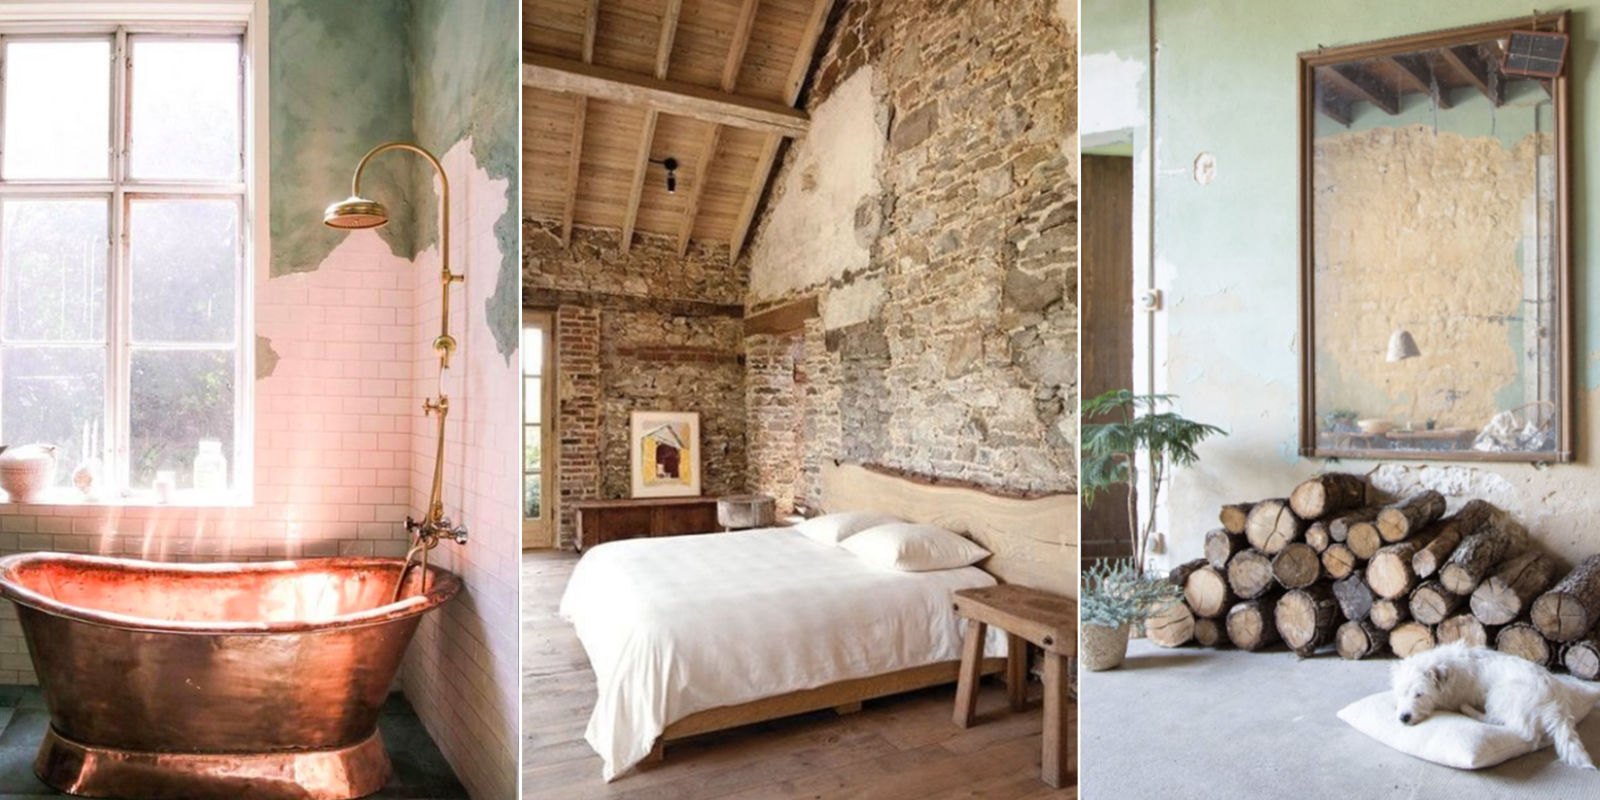 17 Rooms With Rustic Unfinished Walls This Raw Wall